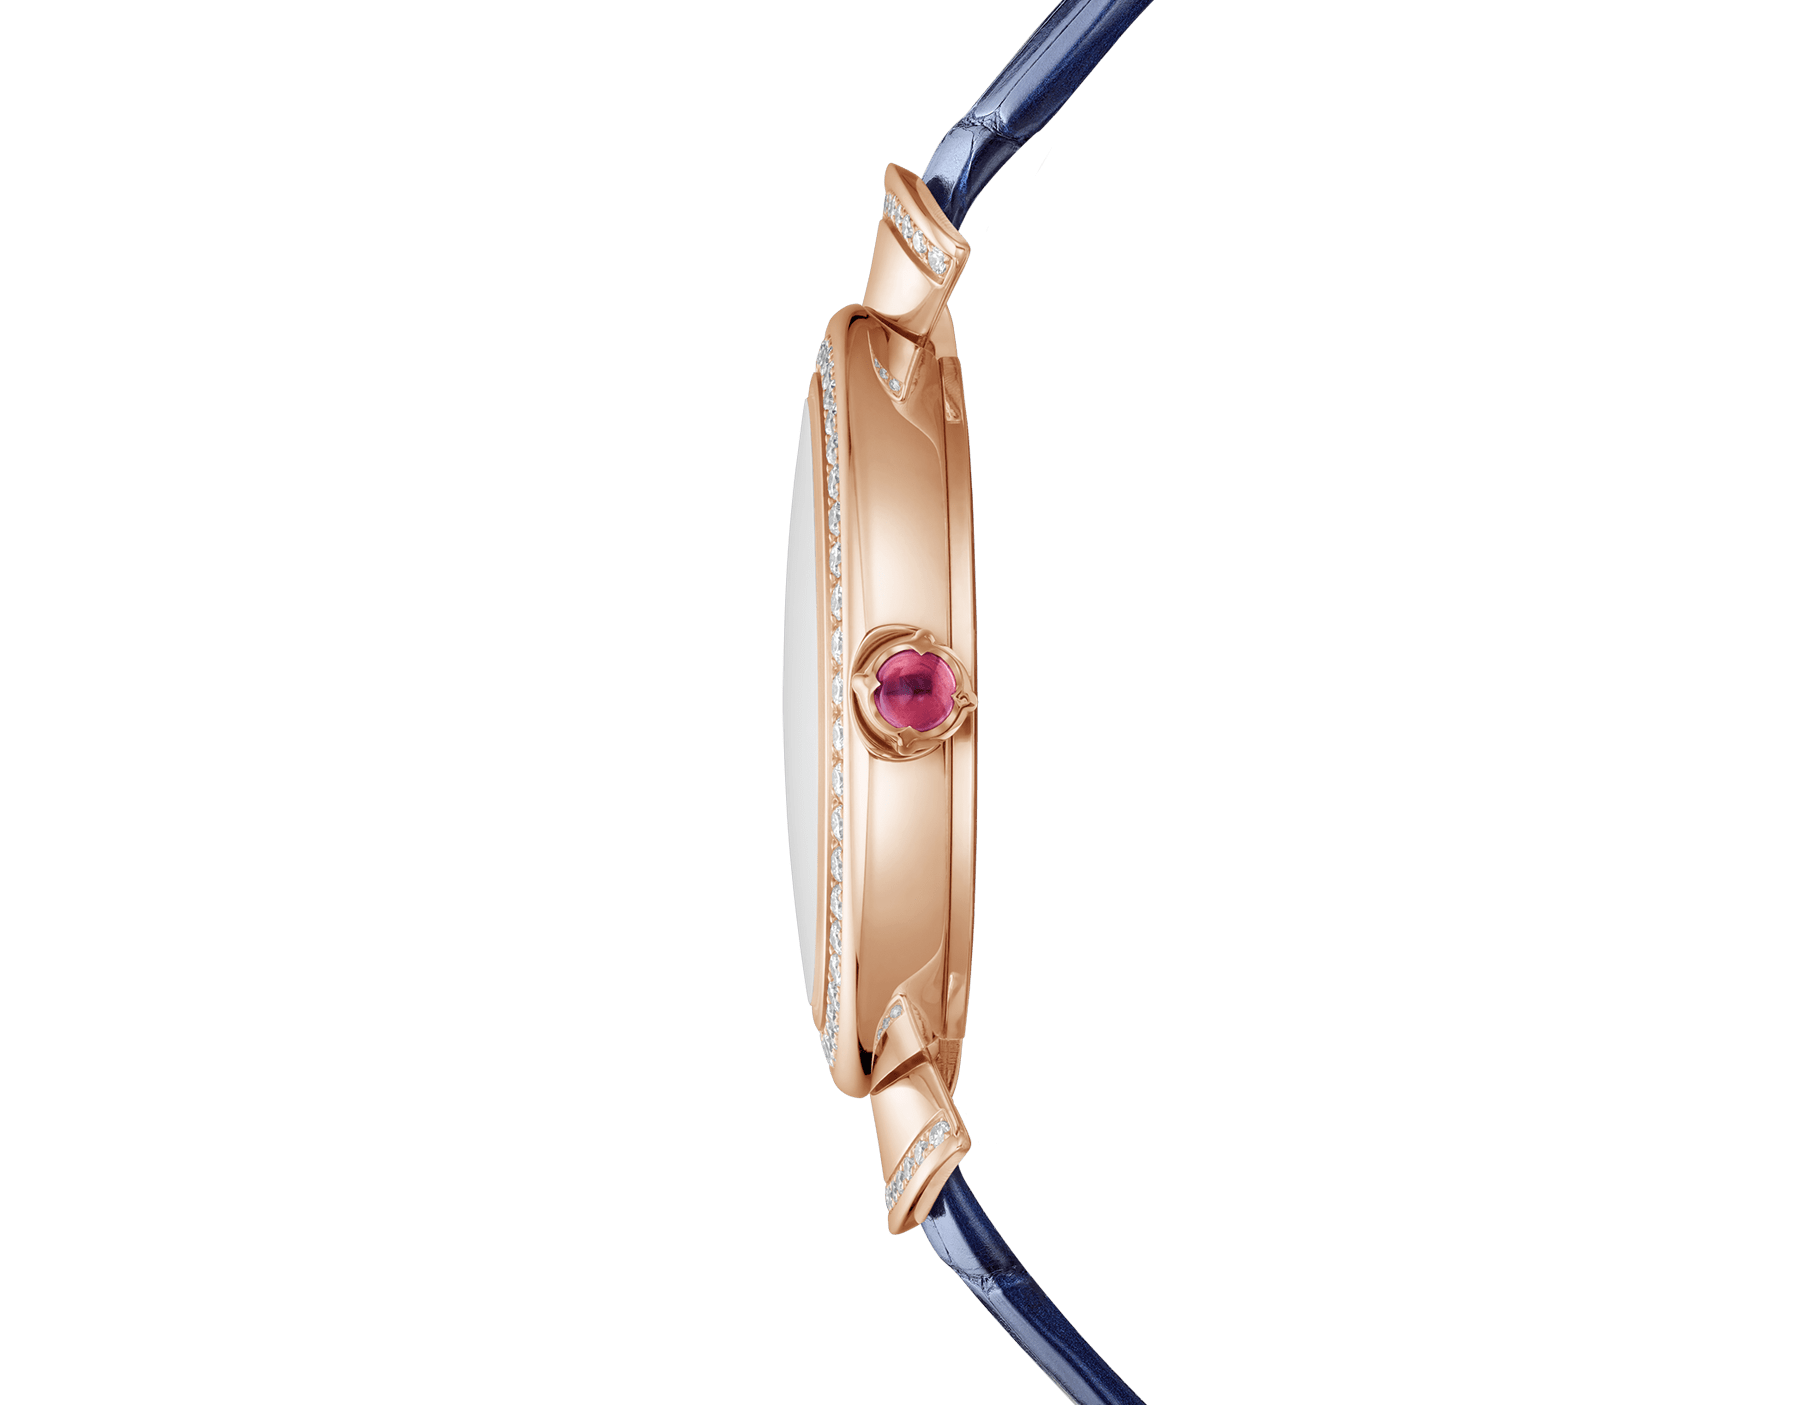 DIVAS' DREAM watch with 18 kt rose gold case, 18 kt rose gold bezel and fan-shaped links both set with round brilliant-cut diamonds, lapis lazuli dial, diamond indexes and blue alligator bracelet 103261 image 2